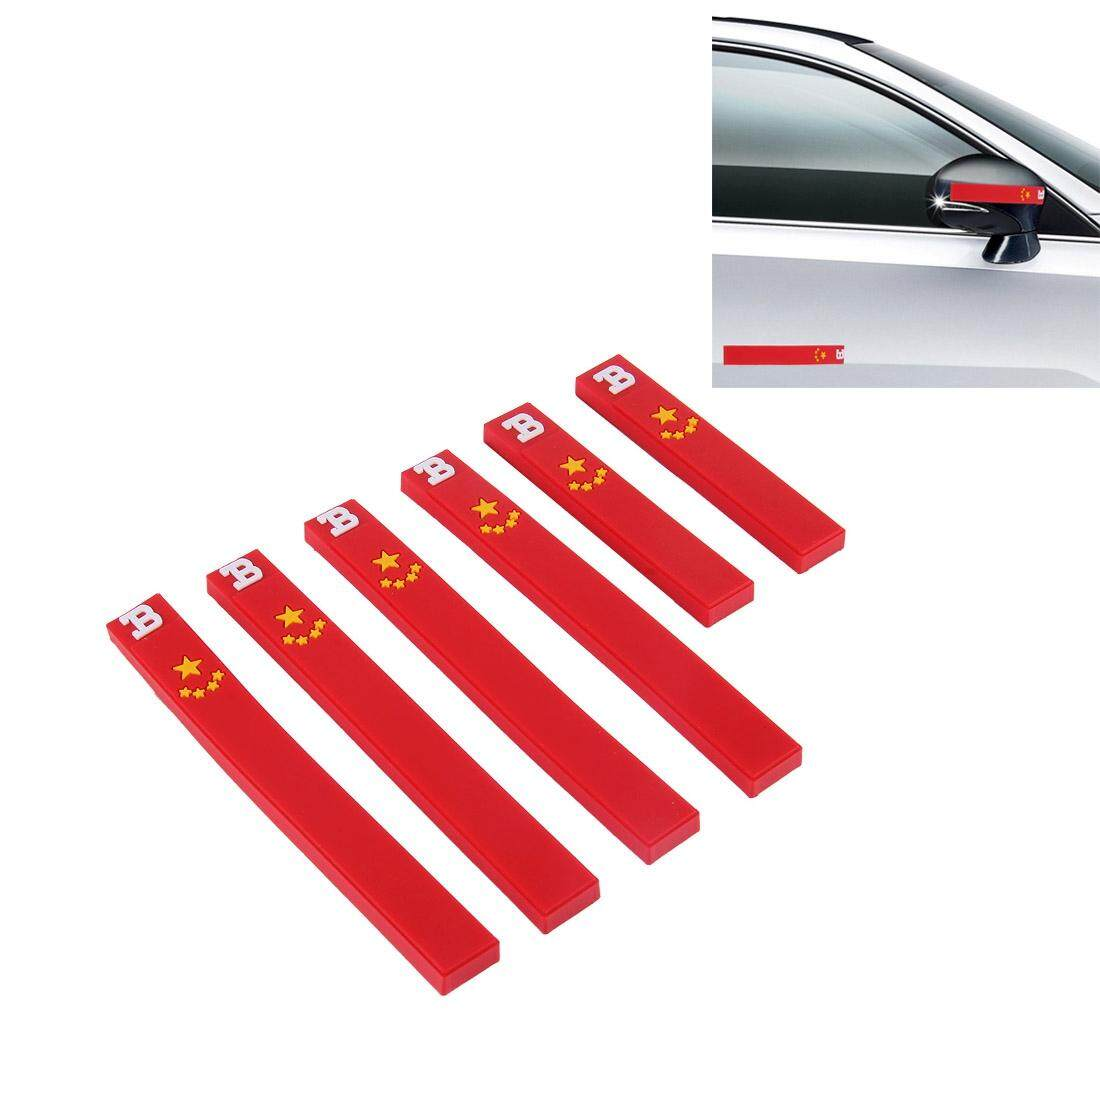 Beli National Guard Store Marwanto606 Door Pelindung Pintu Mobil Original From Japan 6 Pcs D 03 Chinese Flag Rear View Mirror Edge Guards Trim Molding